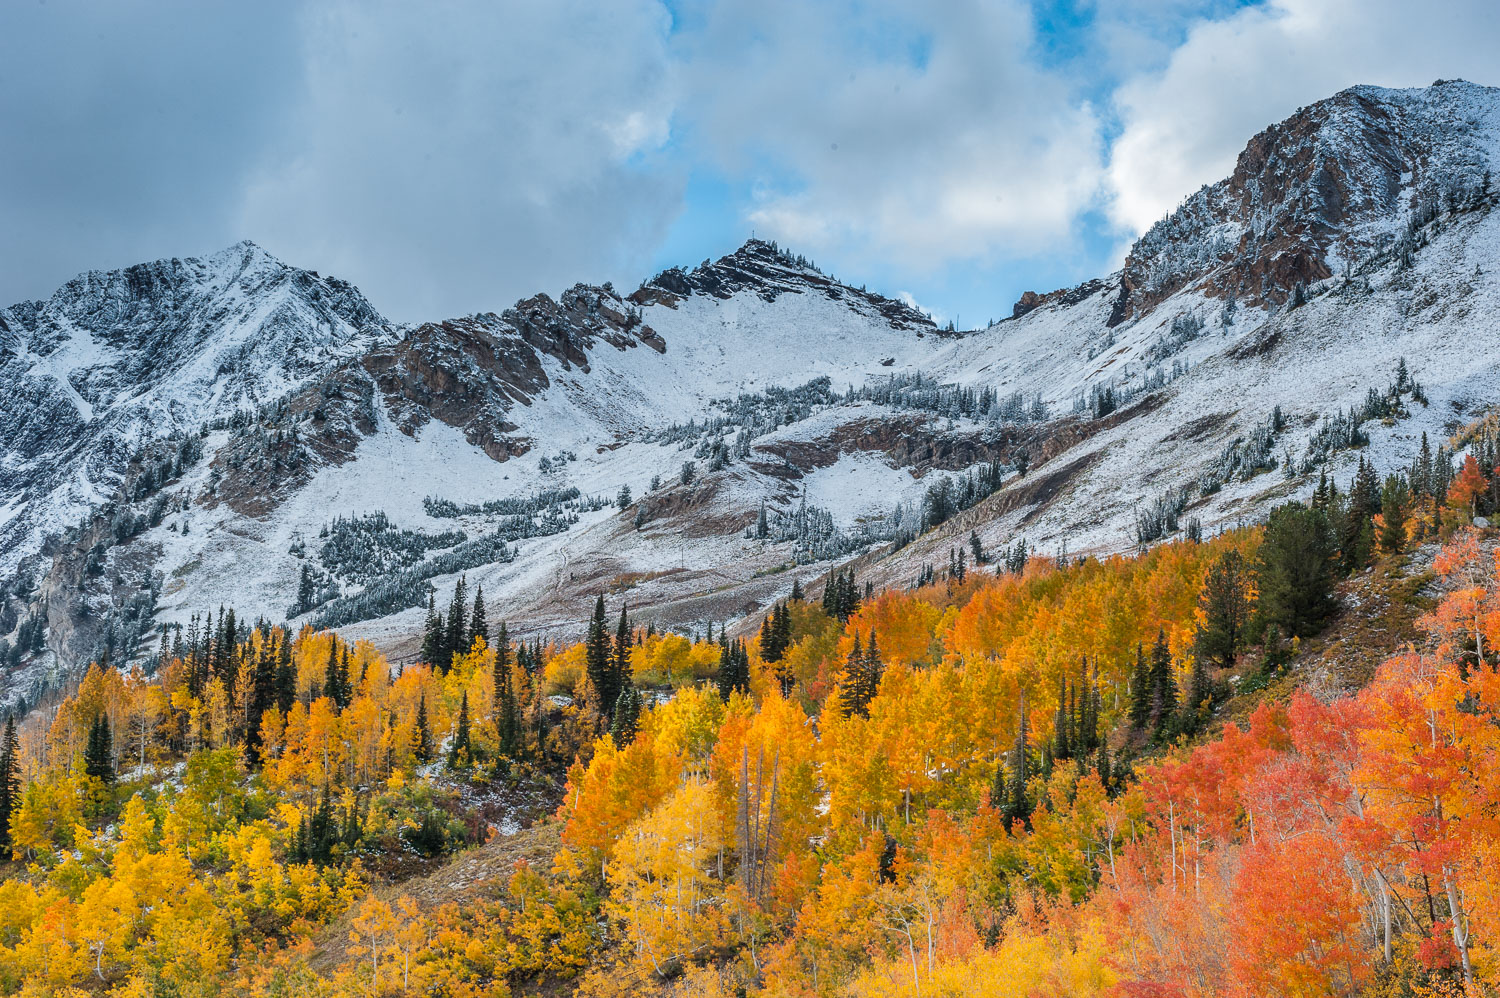 Orange and Yellow Aspens, Mt. Superior and September Snow, Littl